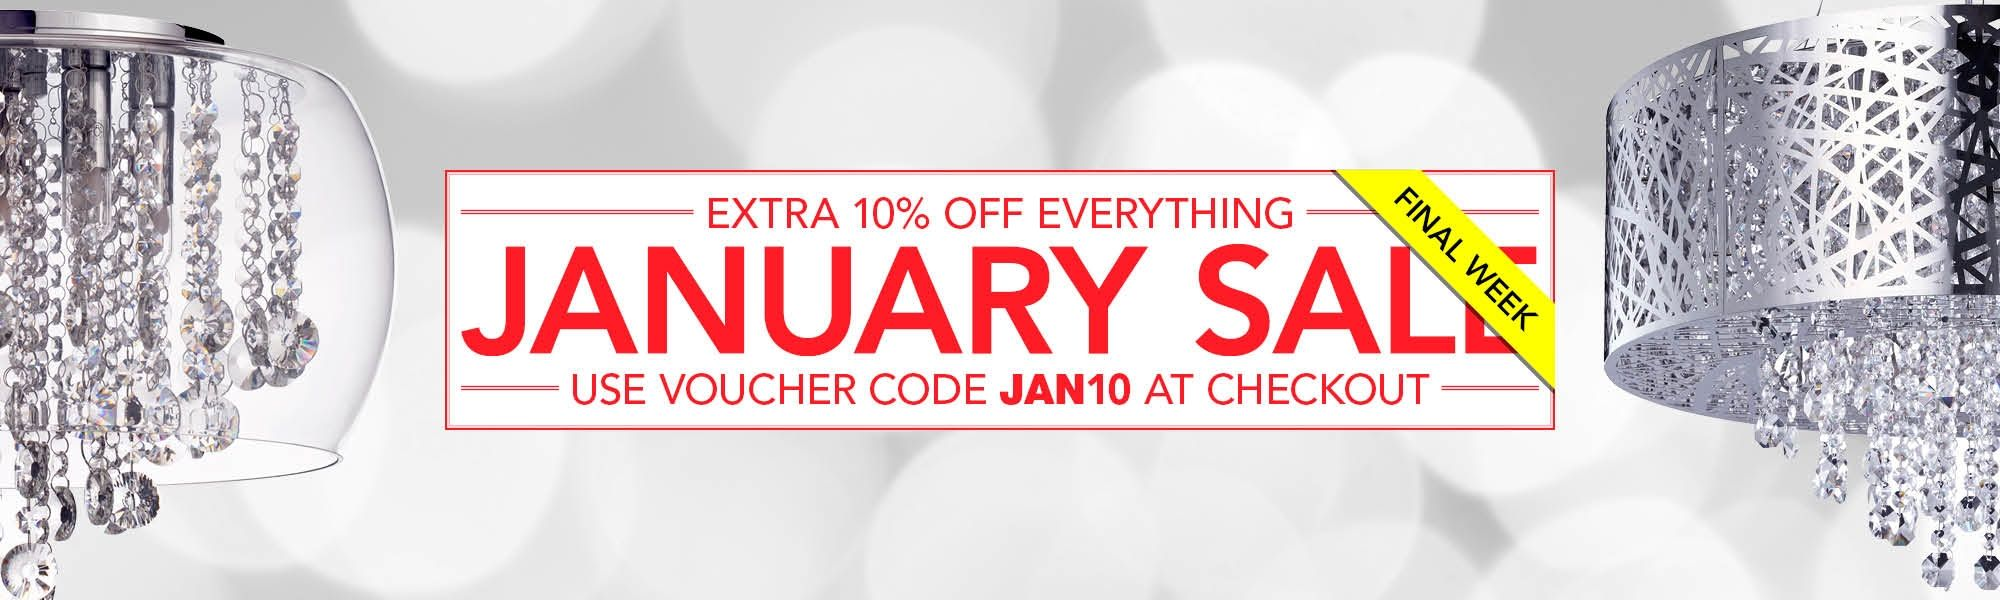 Final Week of the January Sale - Use JAN10 at Checkout